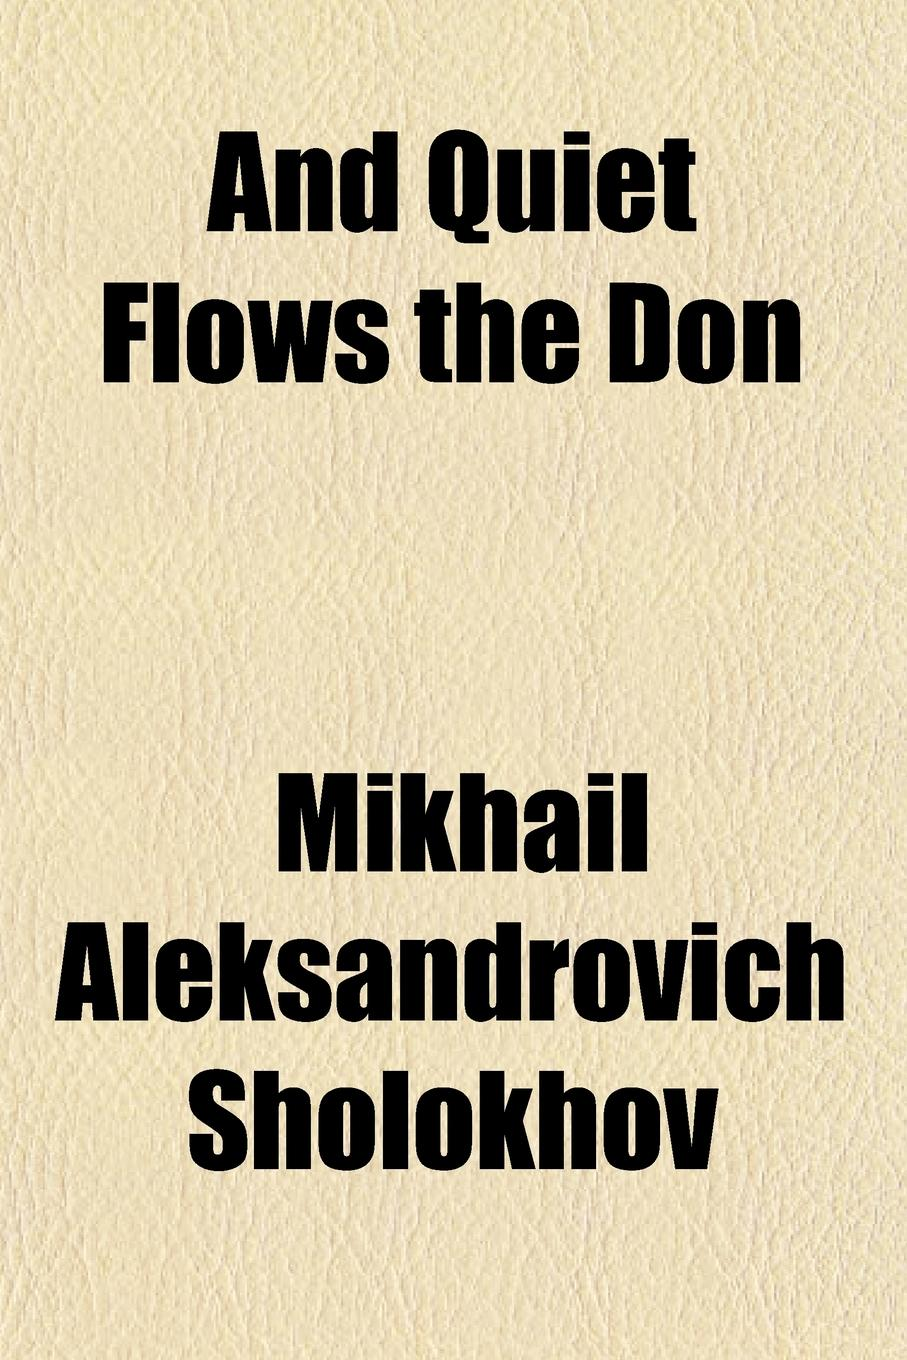 Mikhail Aleksandrovich Sholokhov And Quiet Flows the Don free shipping kayipht cm400ha1 24h can directly buy or contact the seller